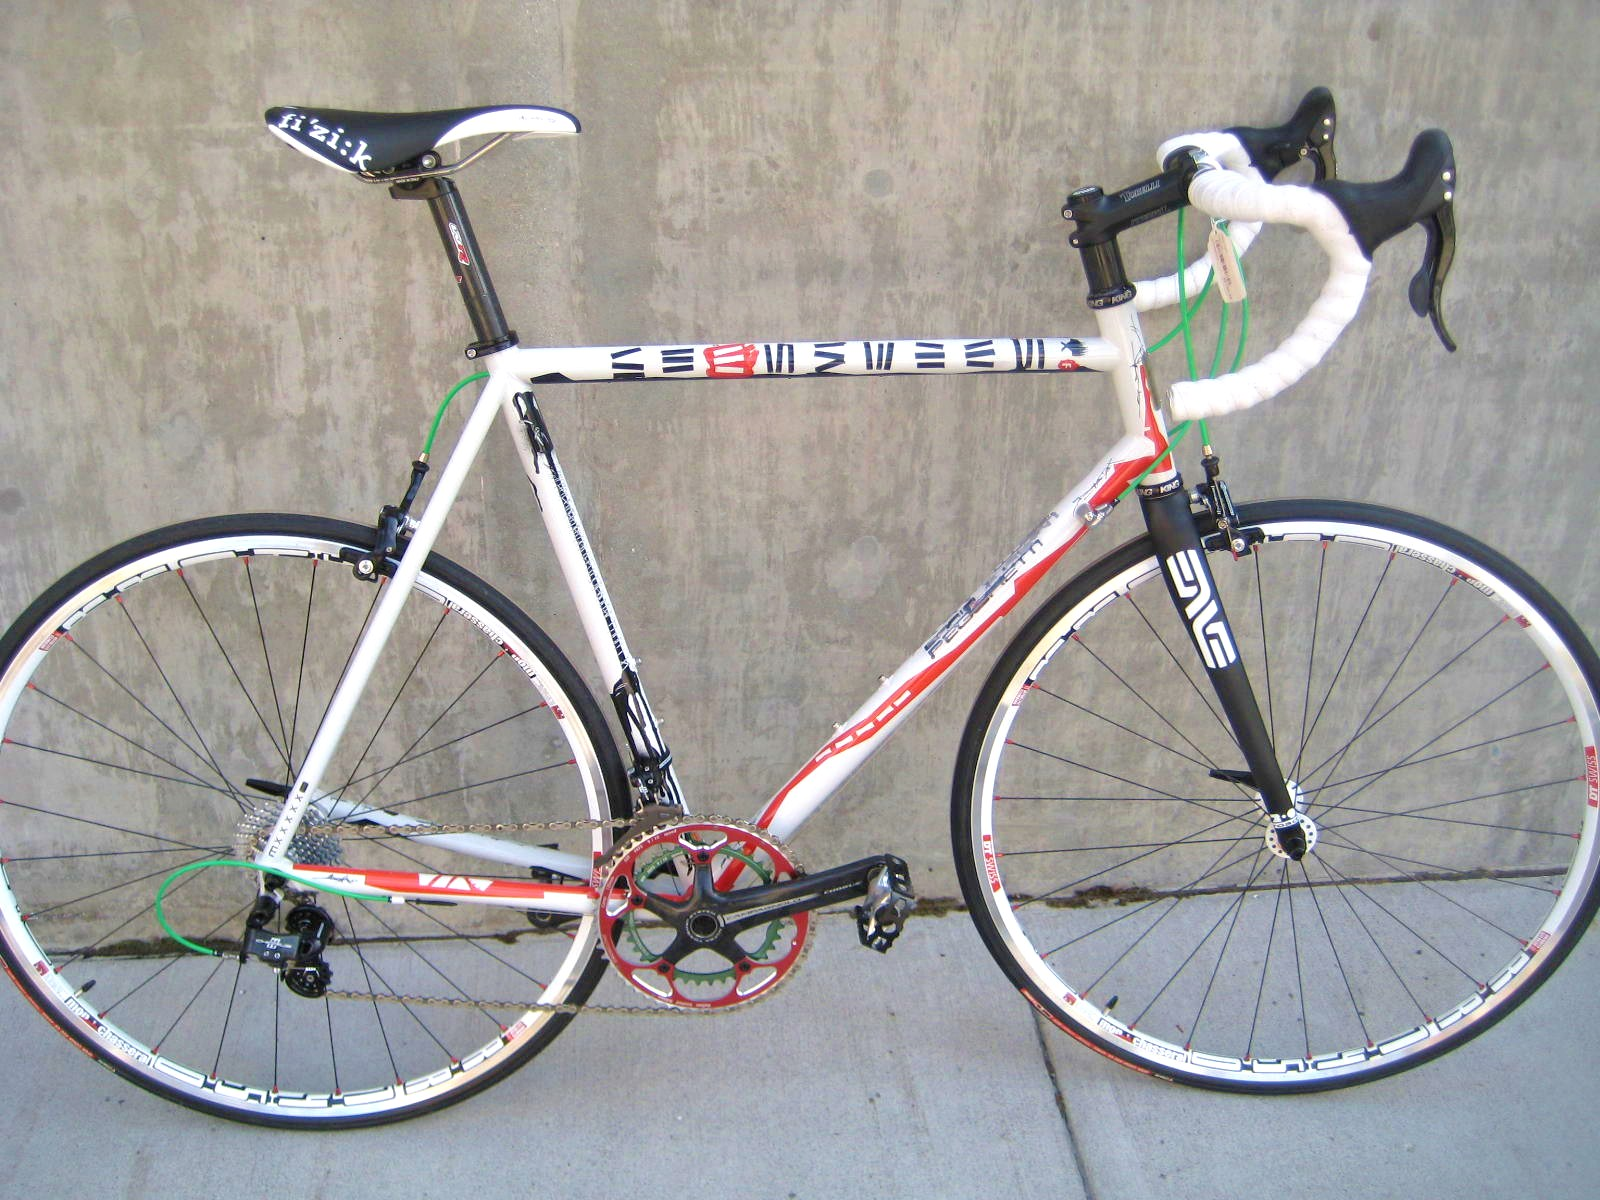 Dario Pegoretti Road Bikes For Sale | Classic Cycle Bainbridge ...